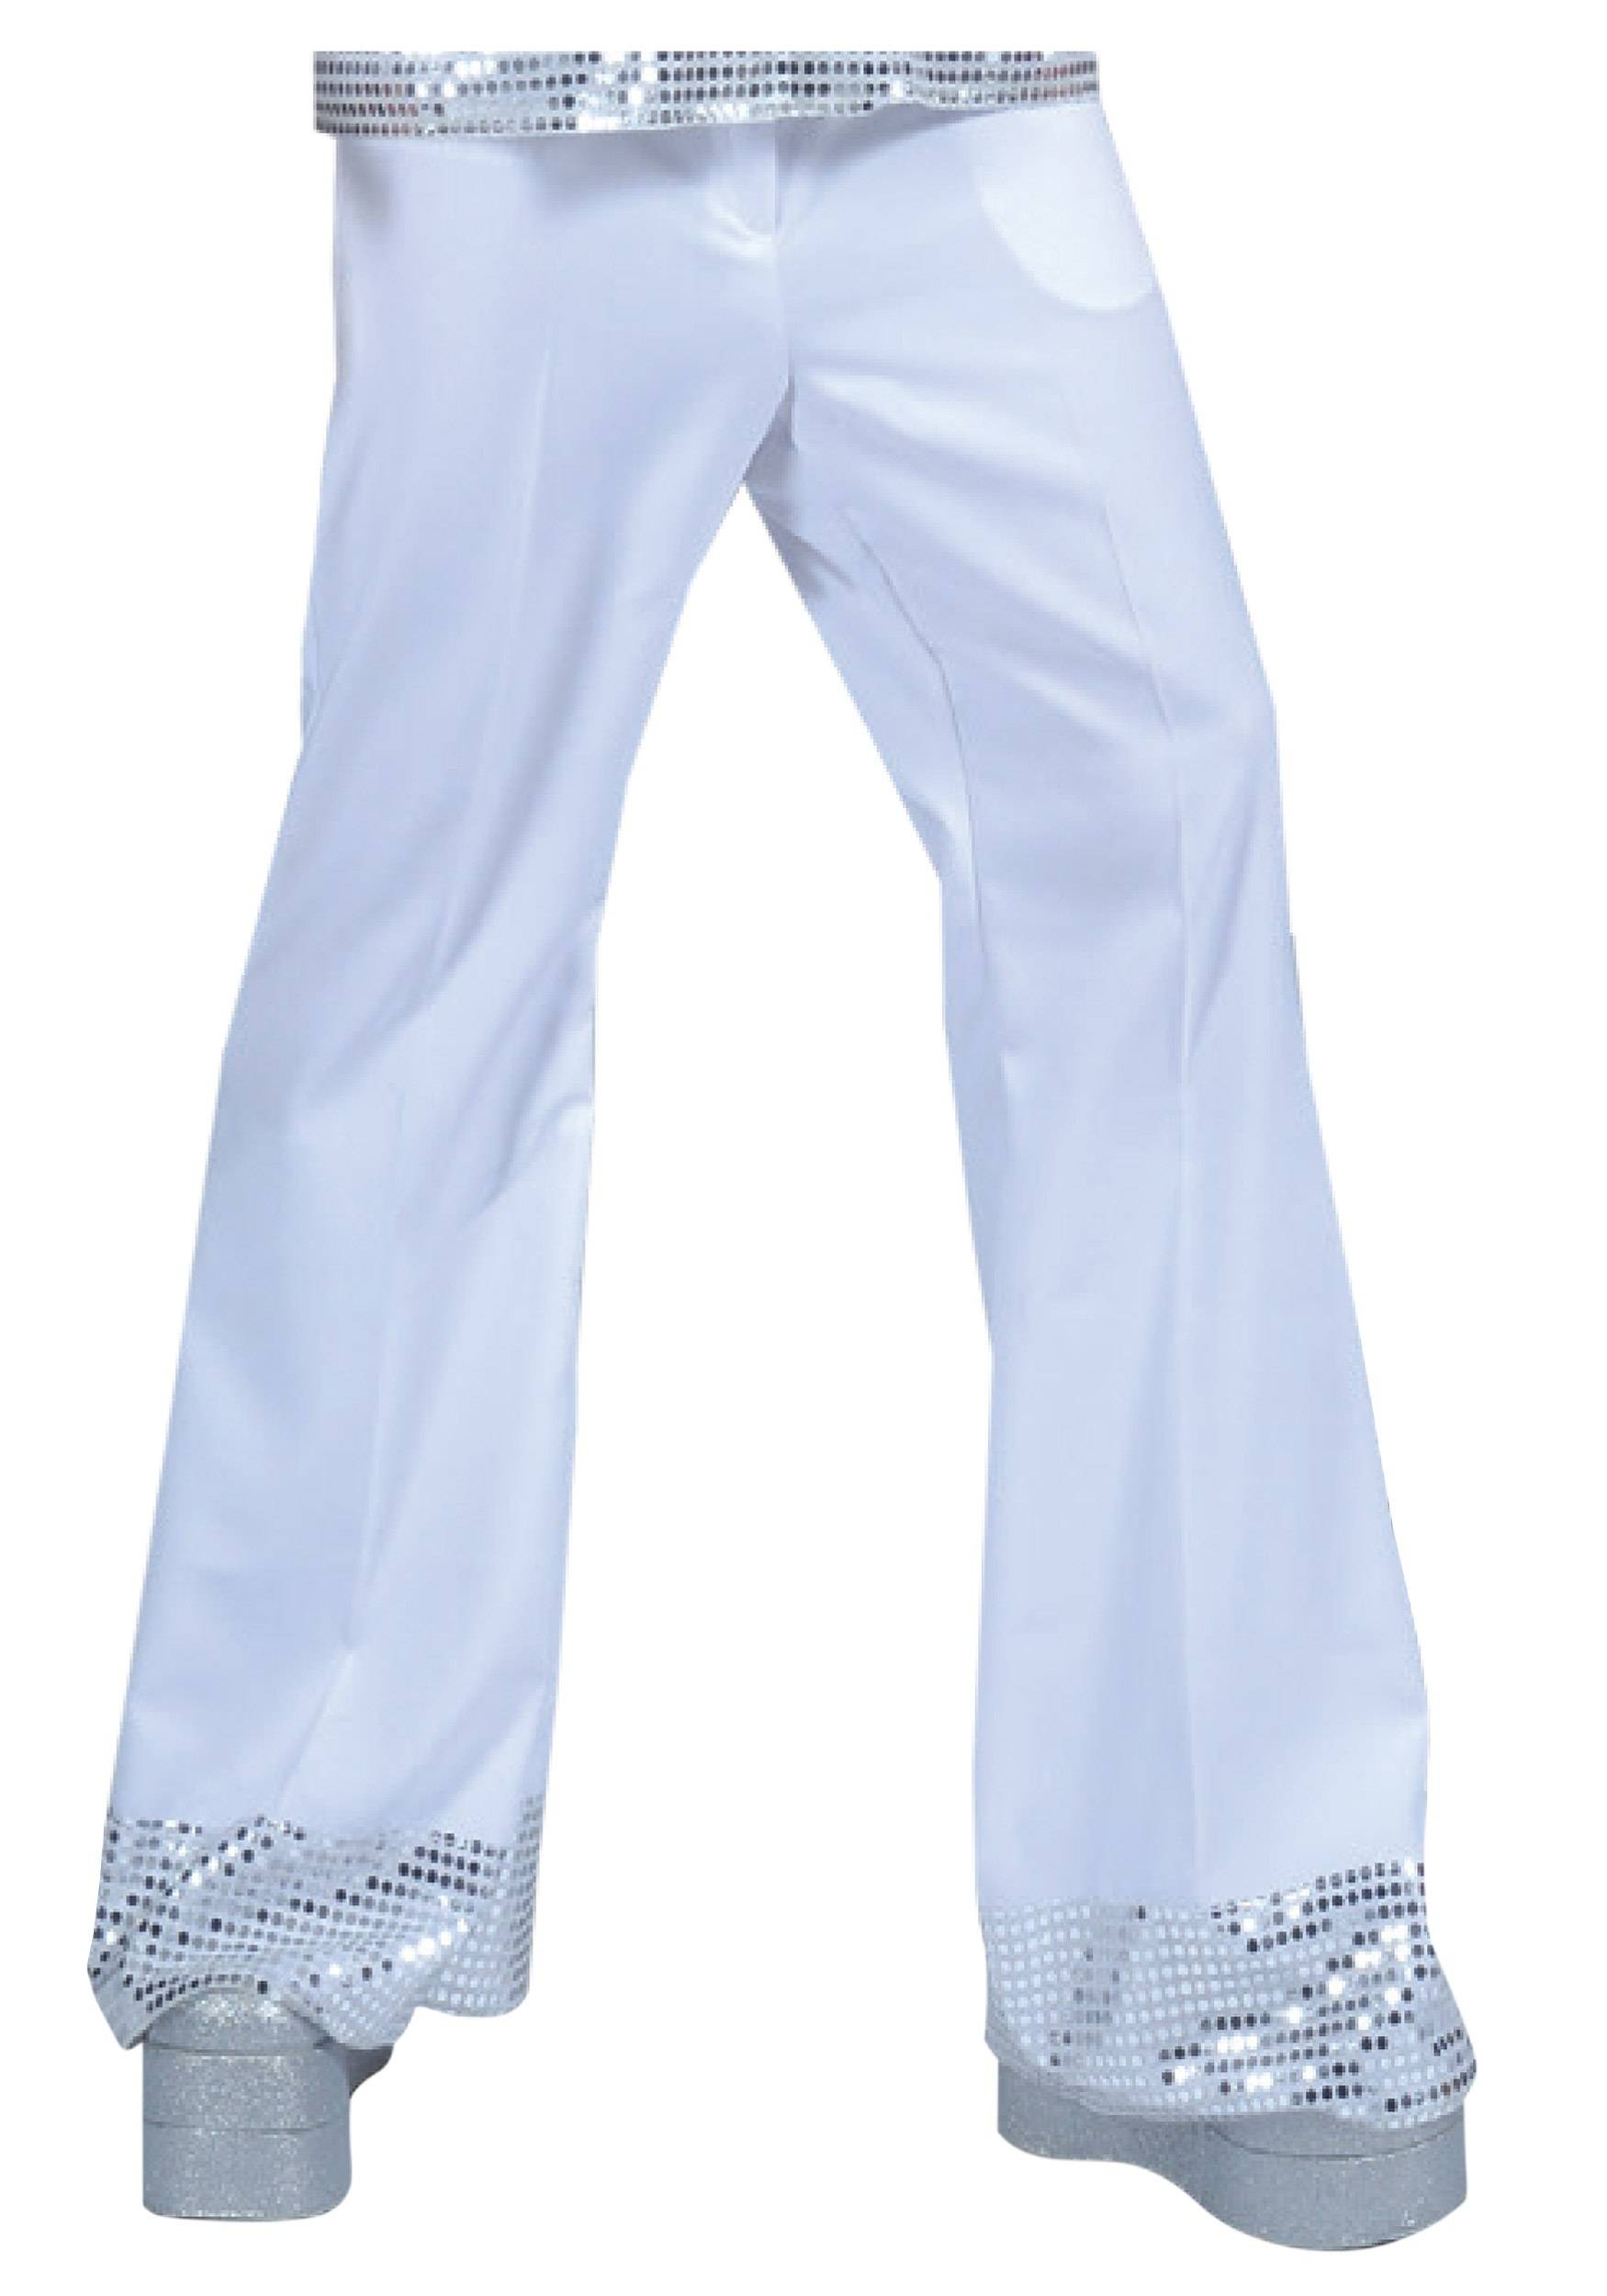 Funny Fashions Men's White Sequin Cuff Disco Pants  - White - Size: Large